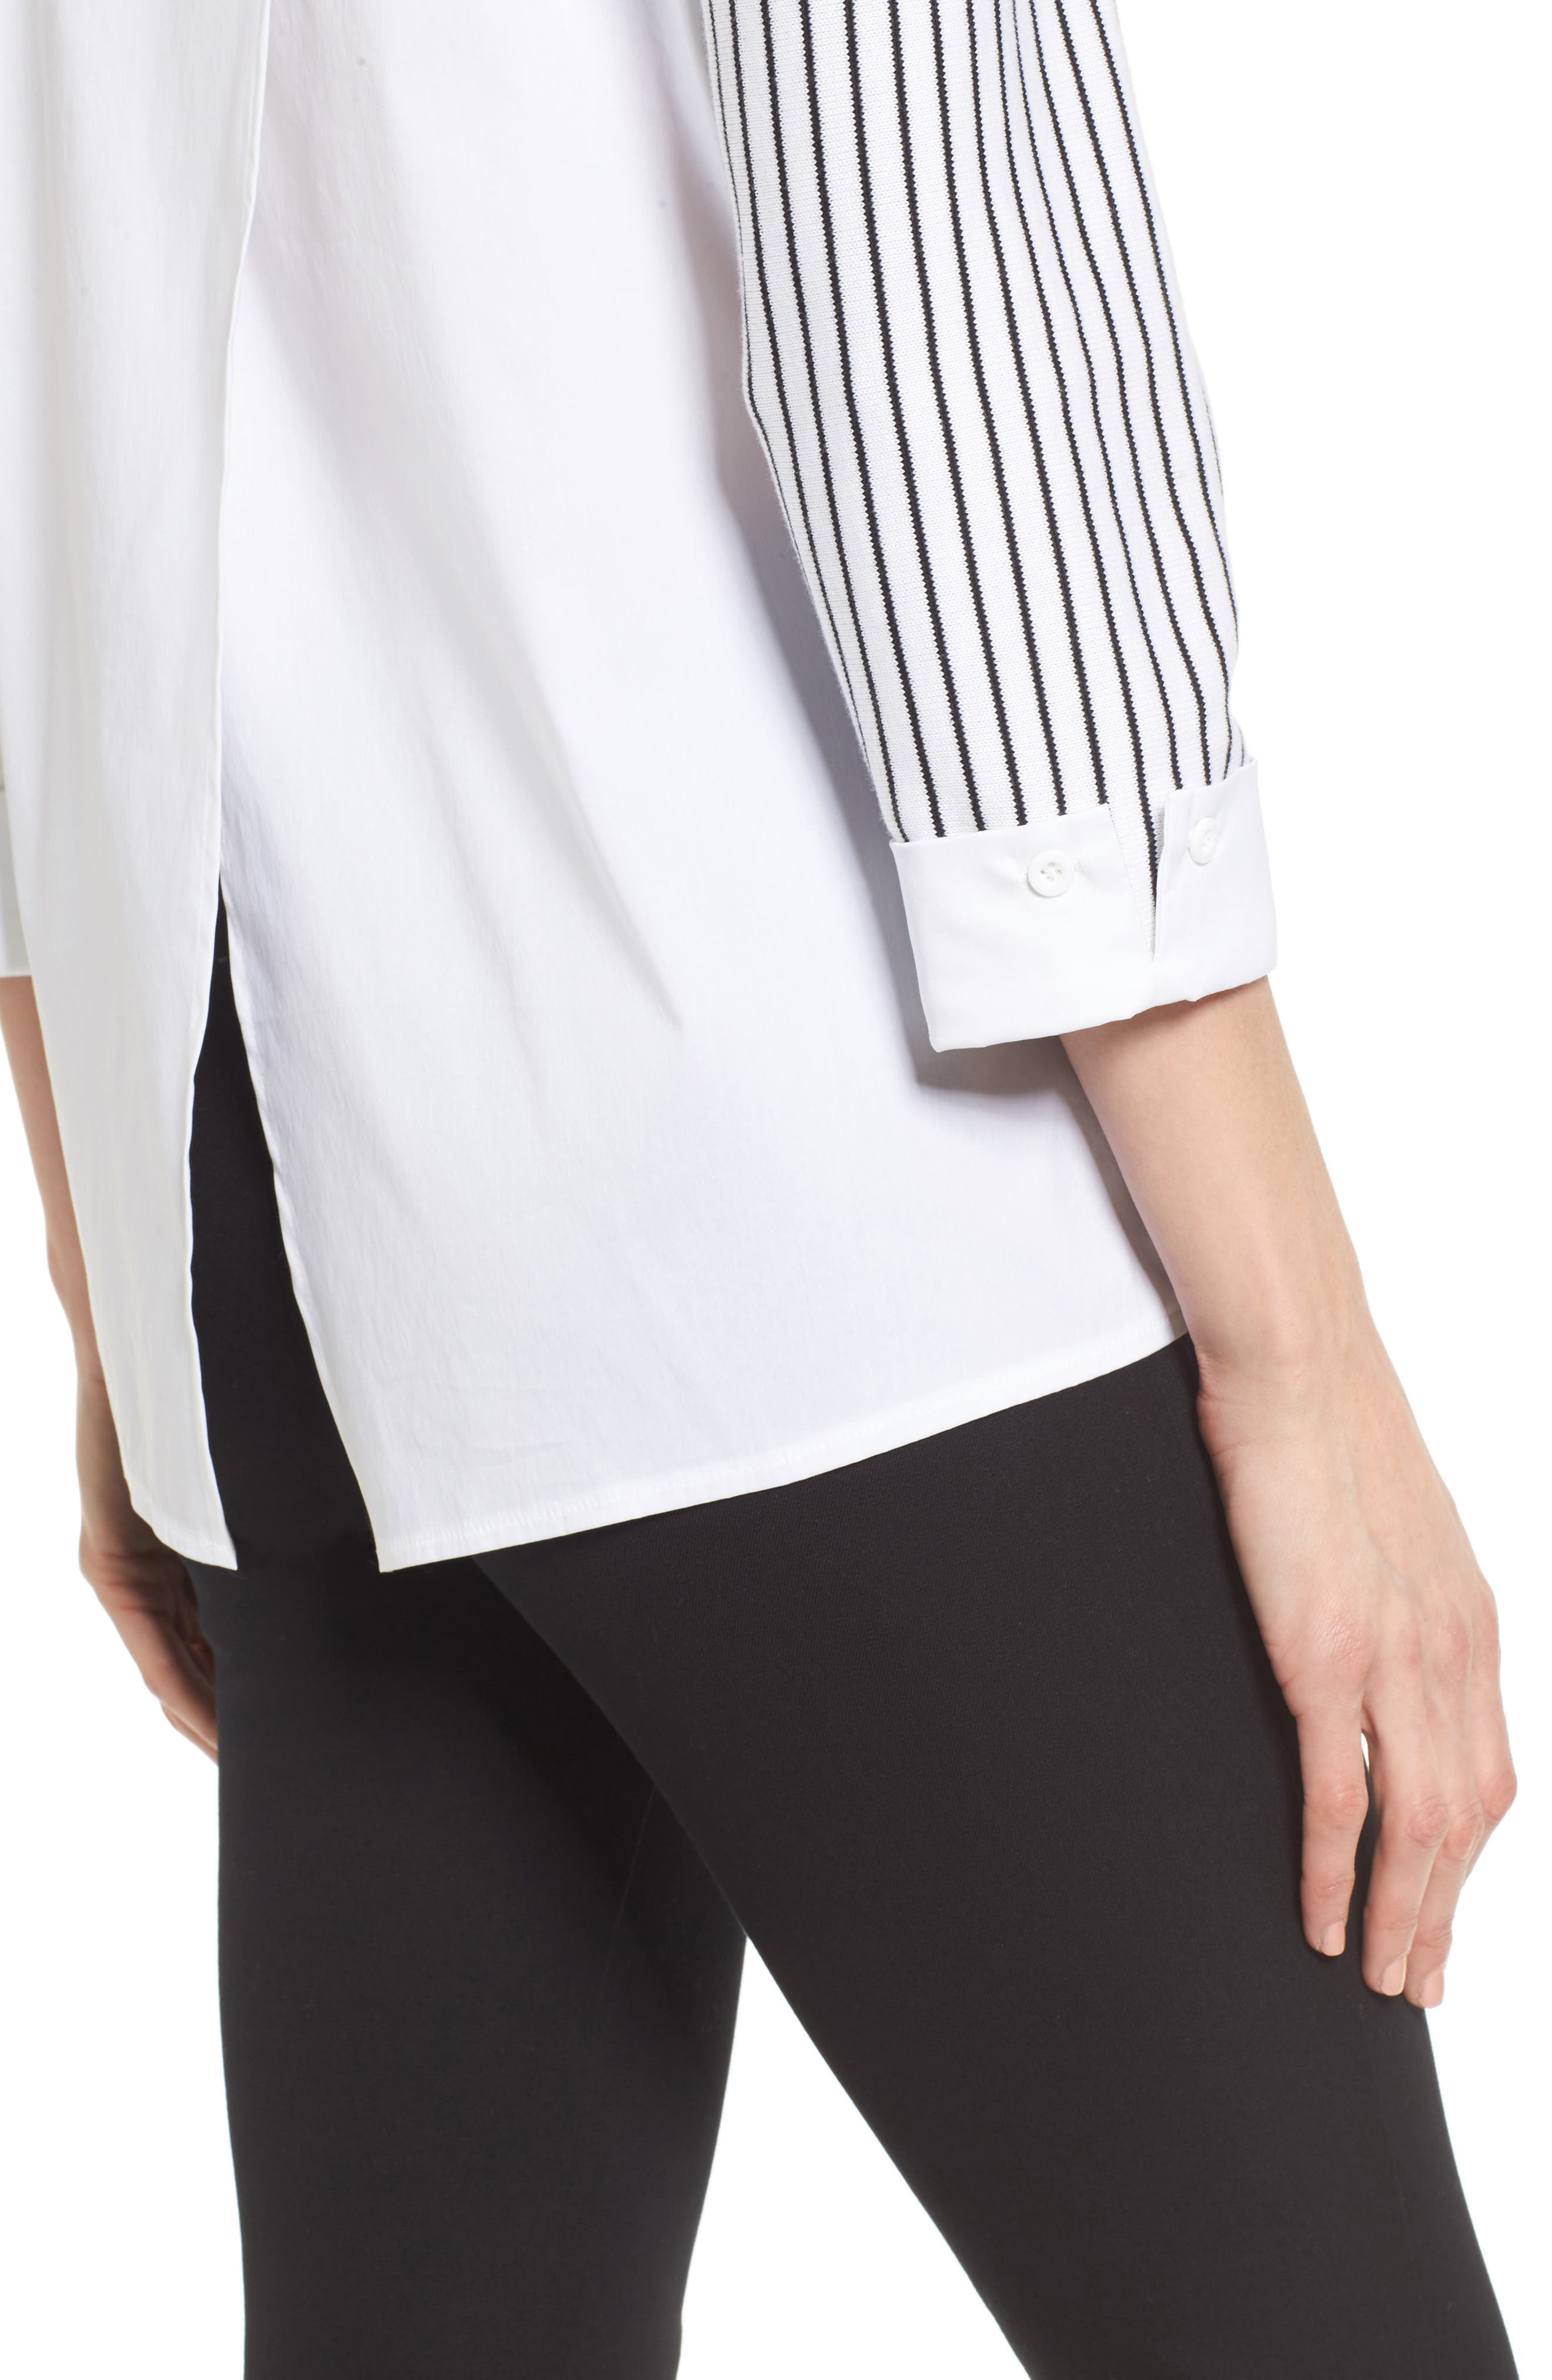 Crossover Tunic,                             Alternate thumbnail 4, color,                             PEAR/ BLACK/ WHITE